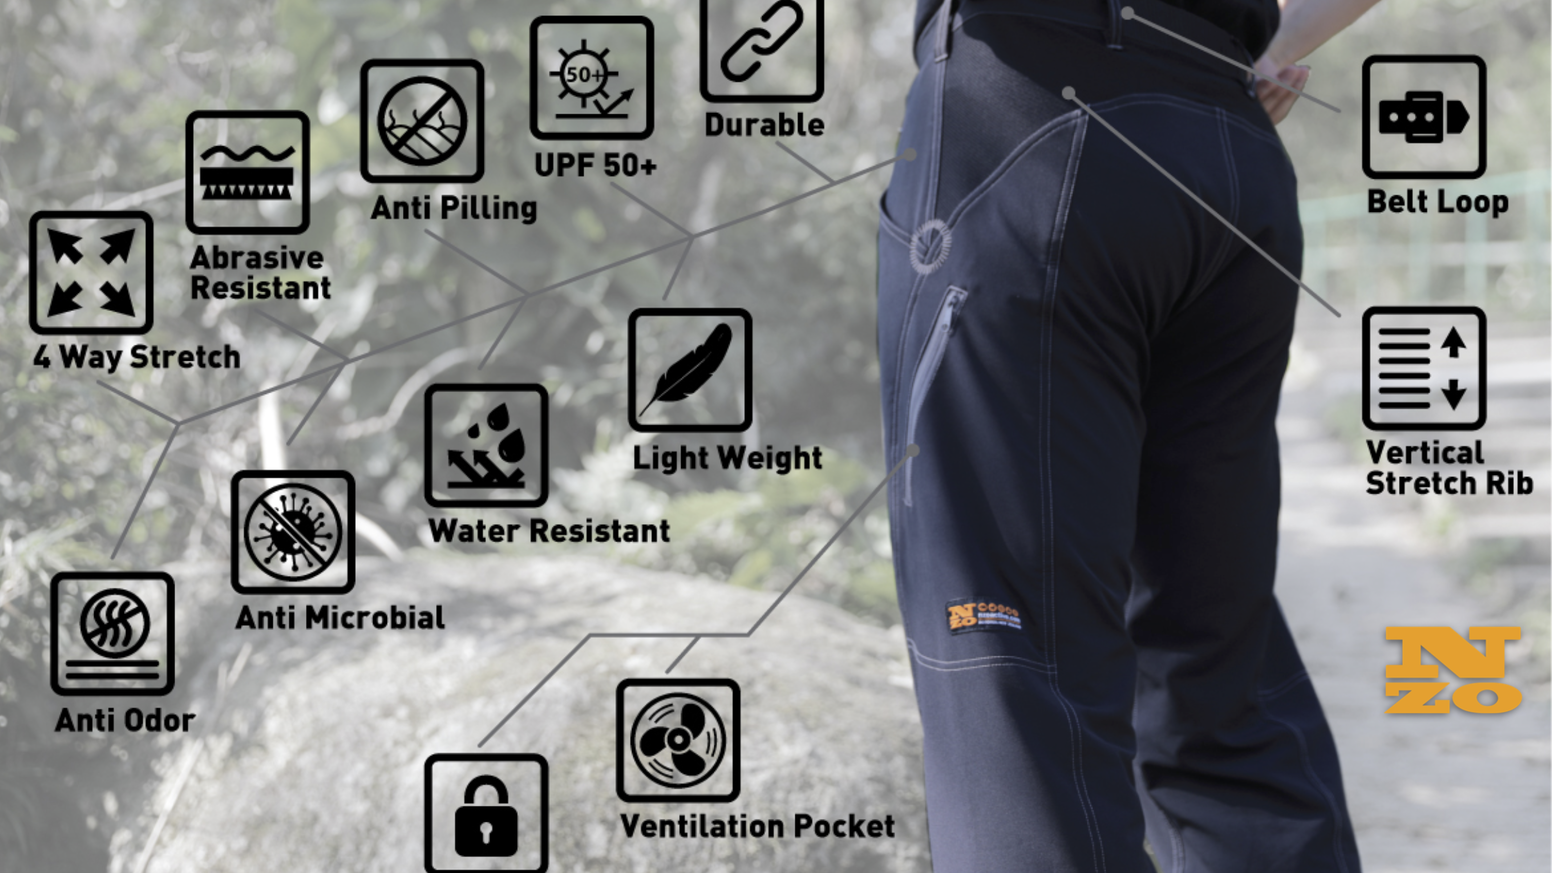 The perfect pants for street or trail, made by people with decades of experience in the mountain biking industry for everyday adventure